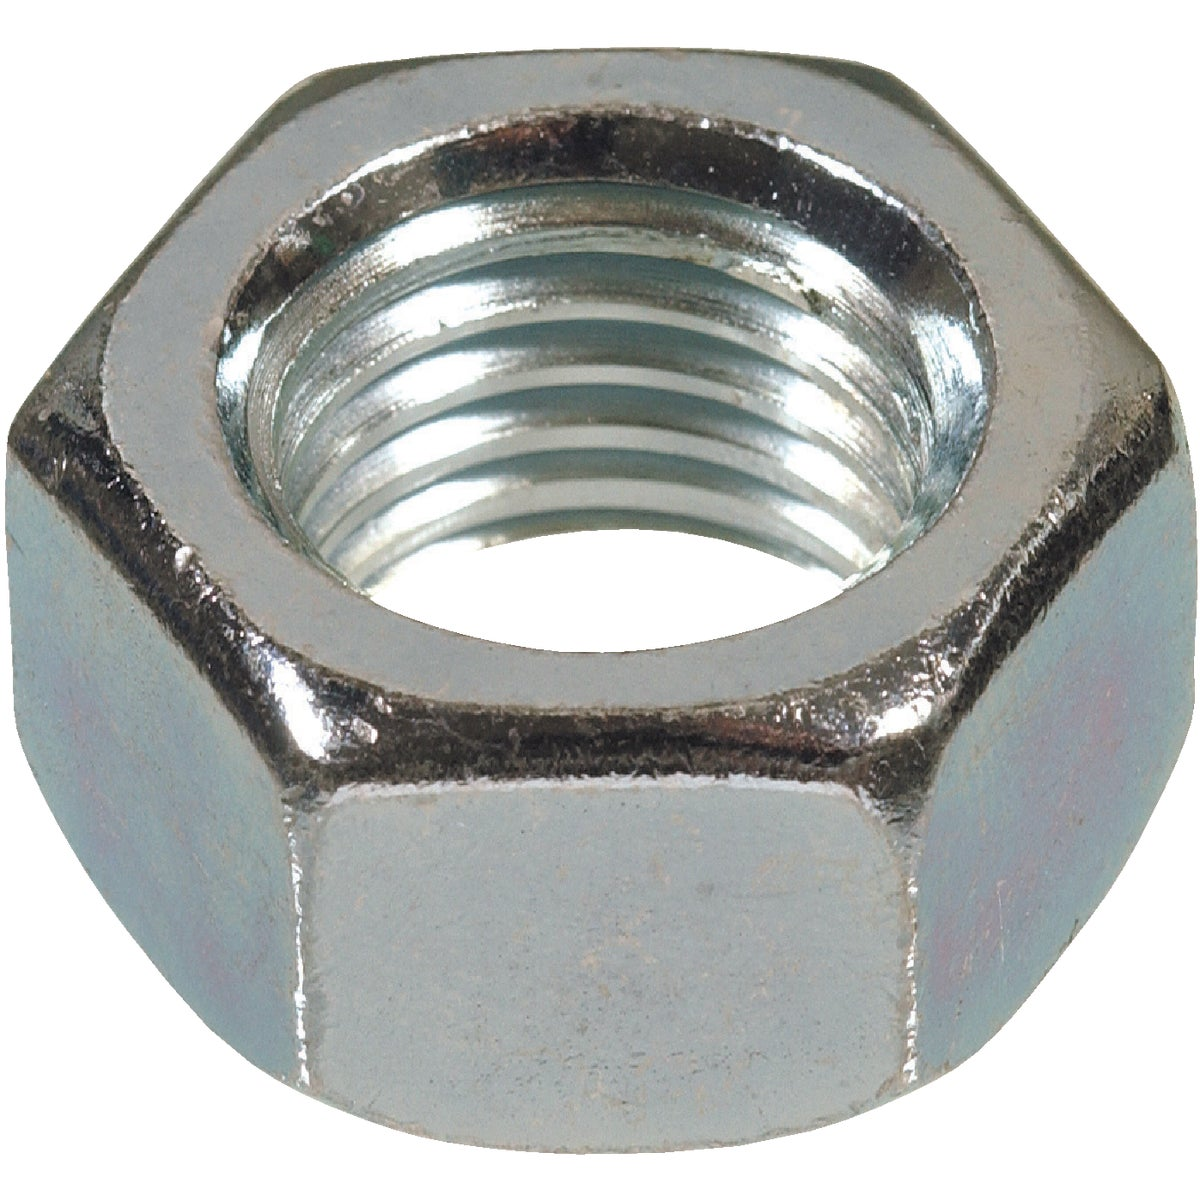 7/16-14 C THREAD HEX NUT - 150012 by Hillman Fastener